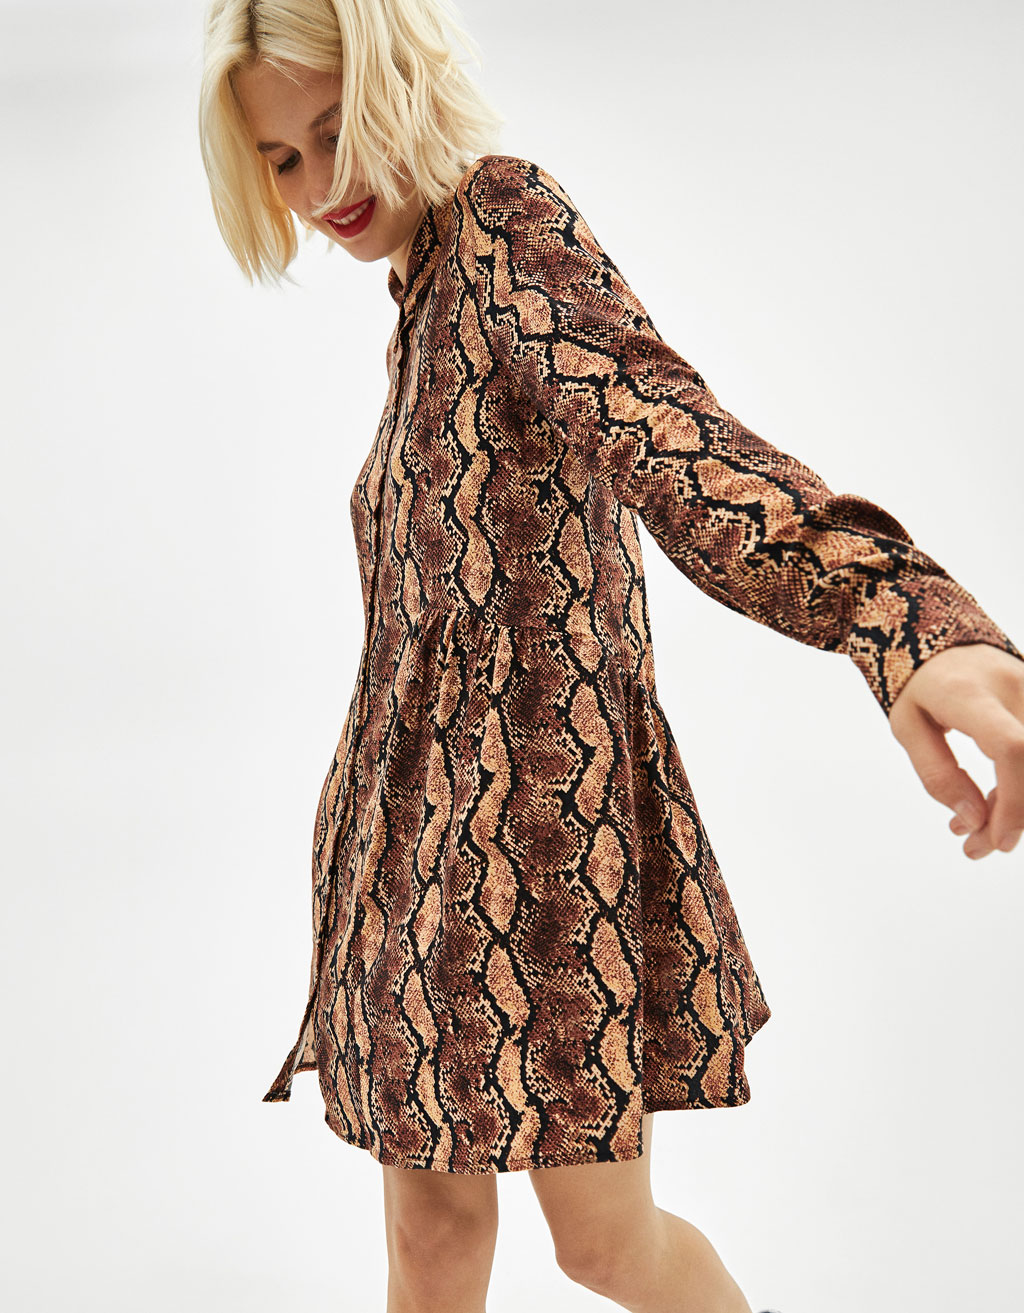 Snakeskin print shirt dress - Dresses - Bershka Philippines 2b8f5b81e